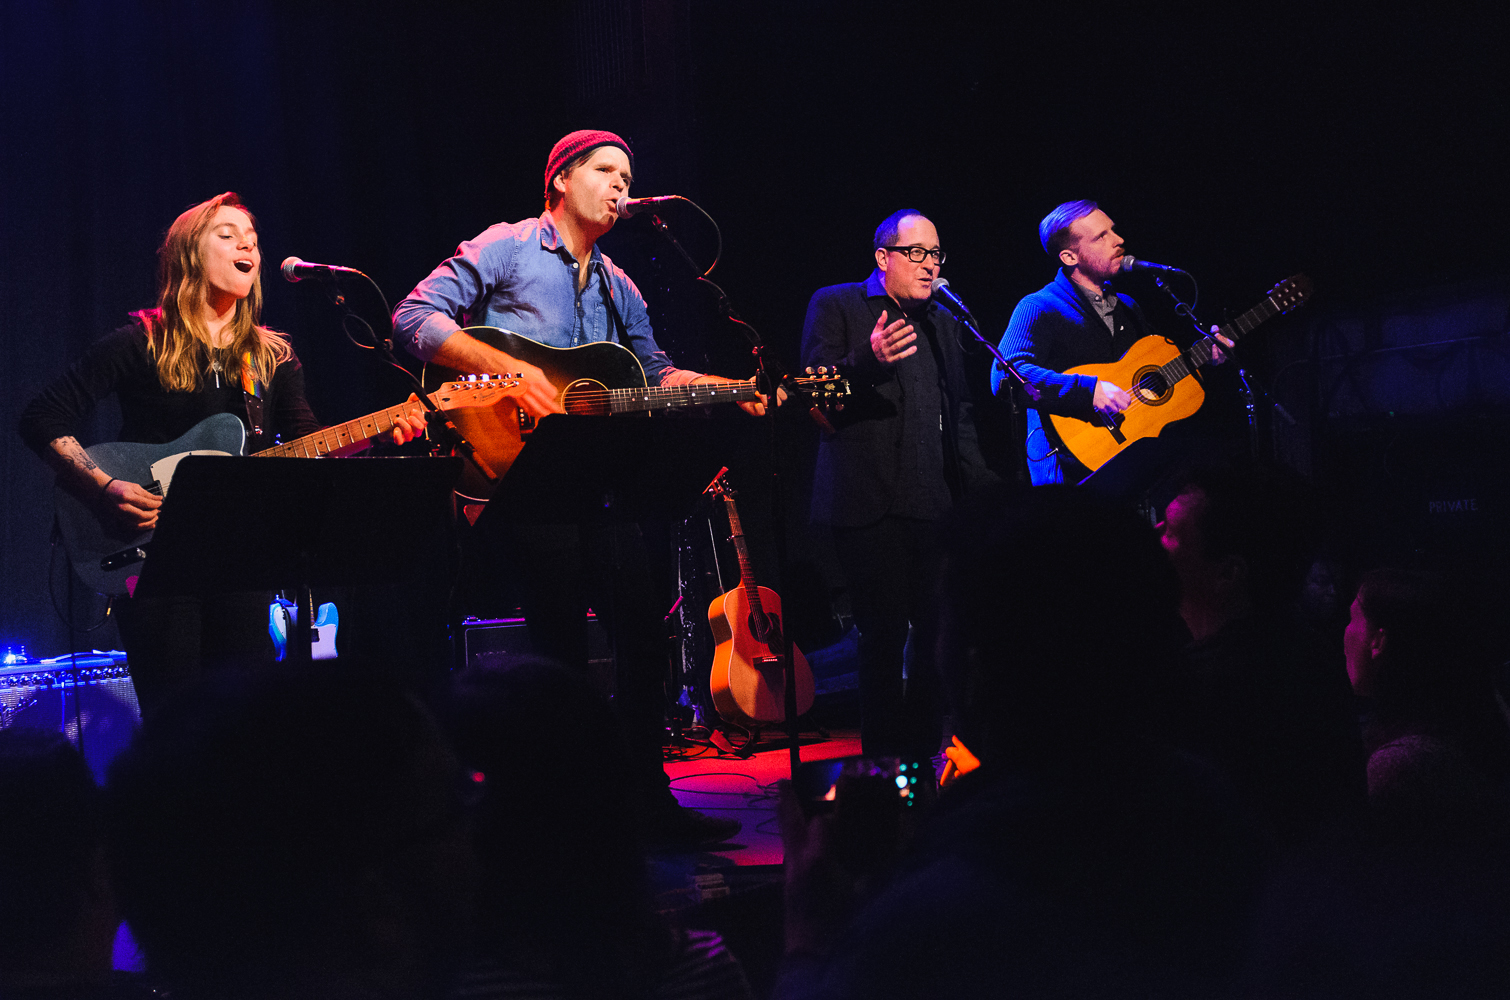 Tiny Changes- A Celebration of the Songs of Scott Hutchison Ben Kaye Julien Baker Ben Gibbard Craig Finn Kevin Devine-3